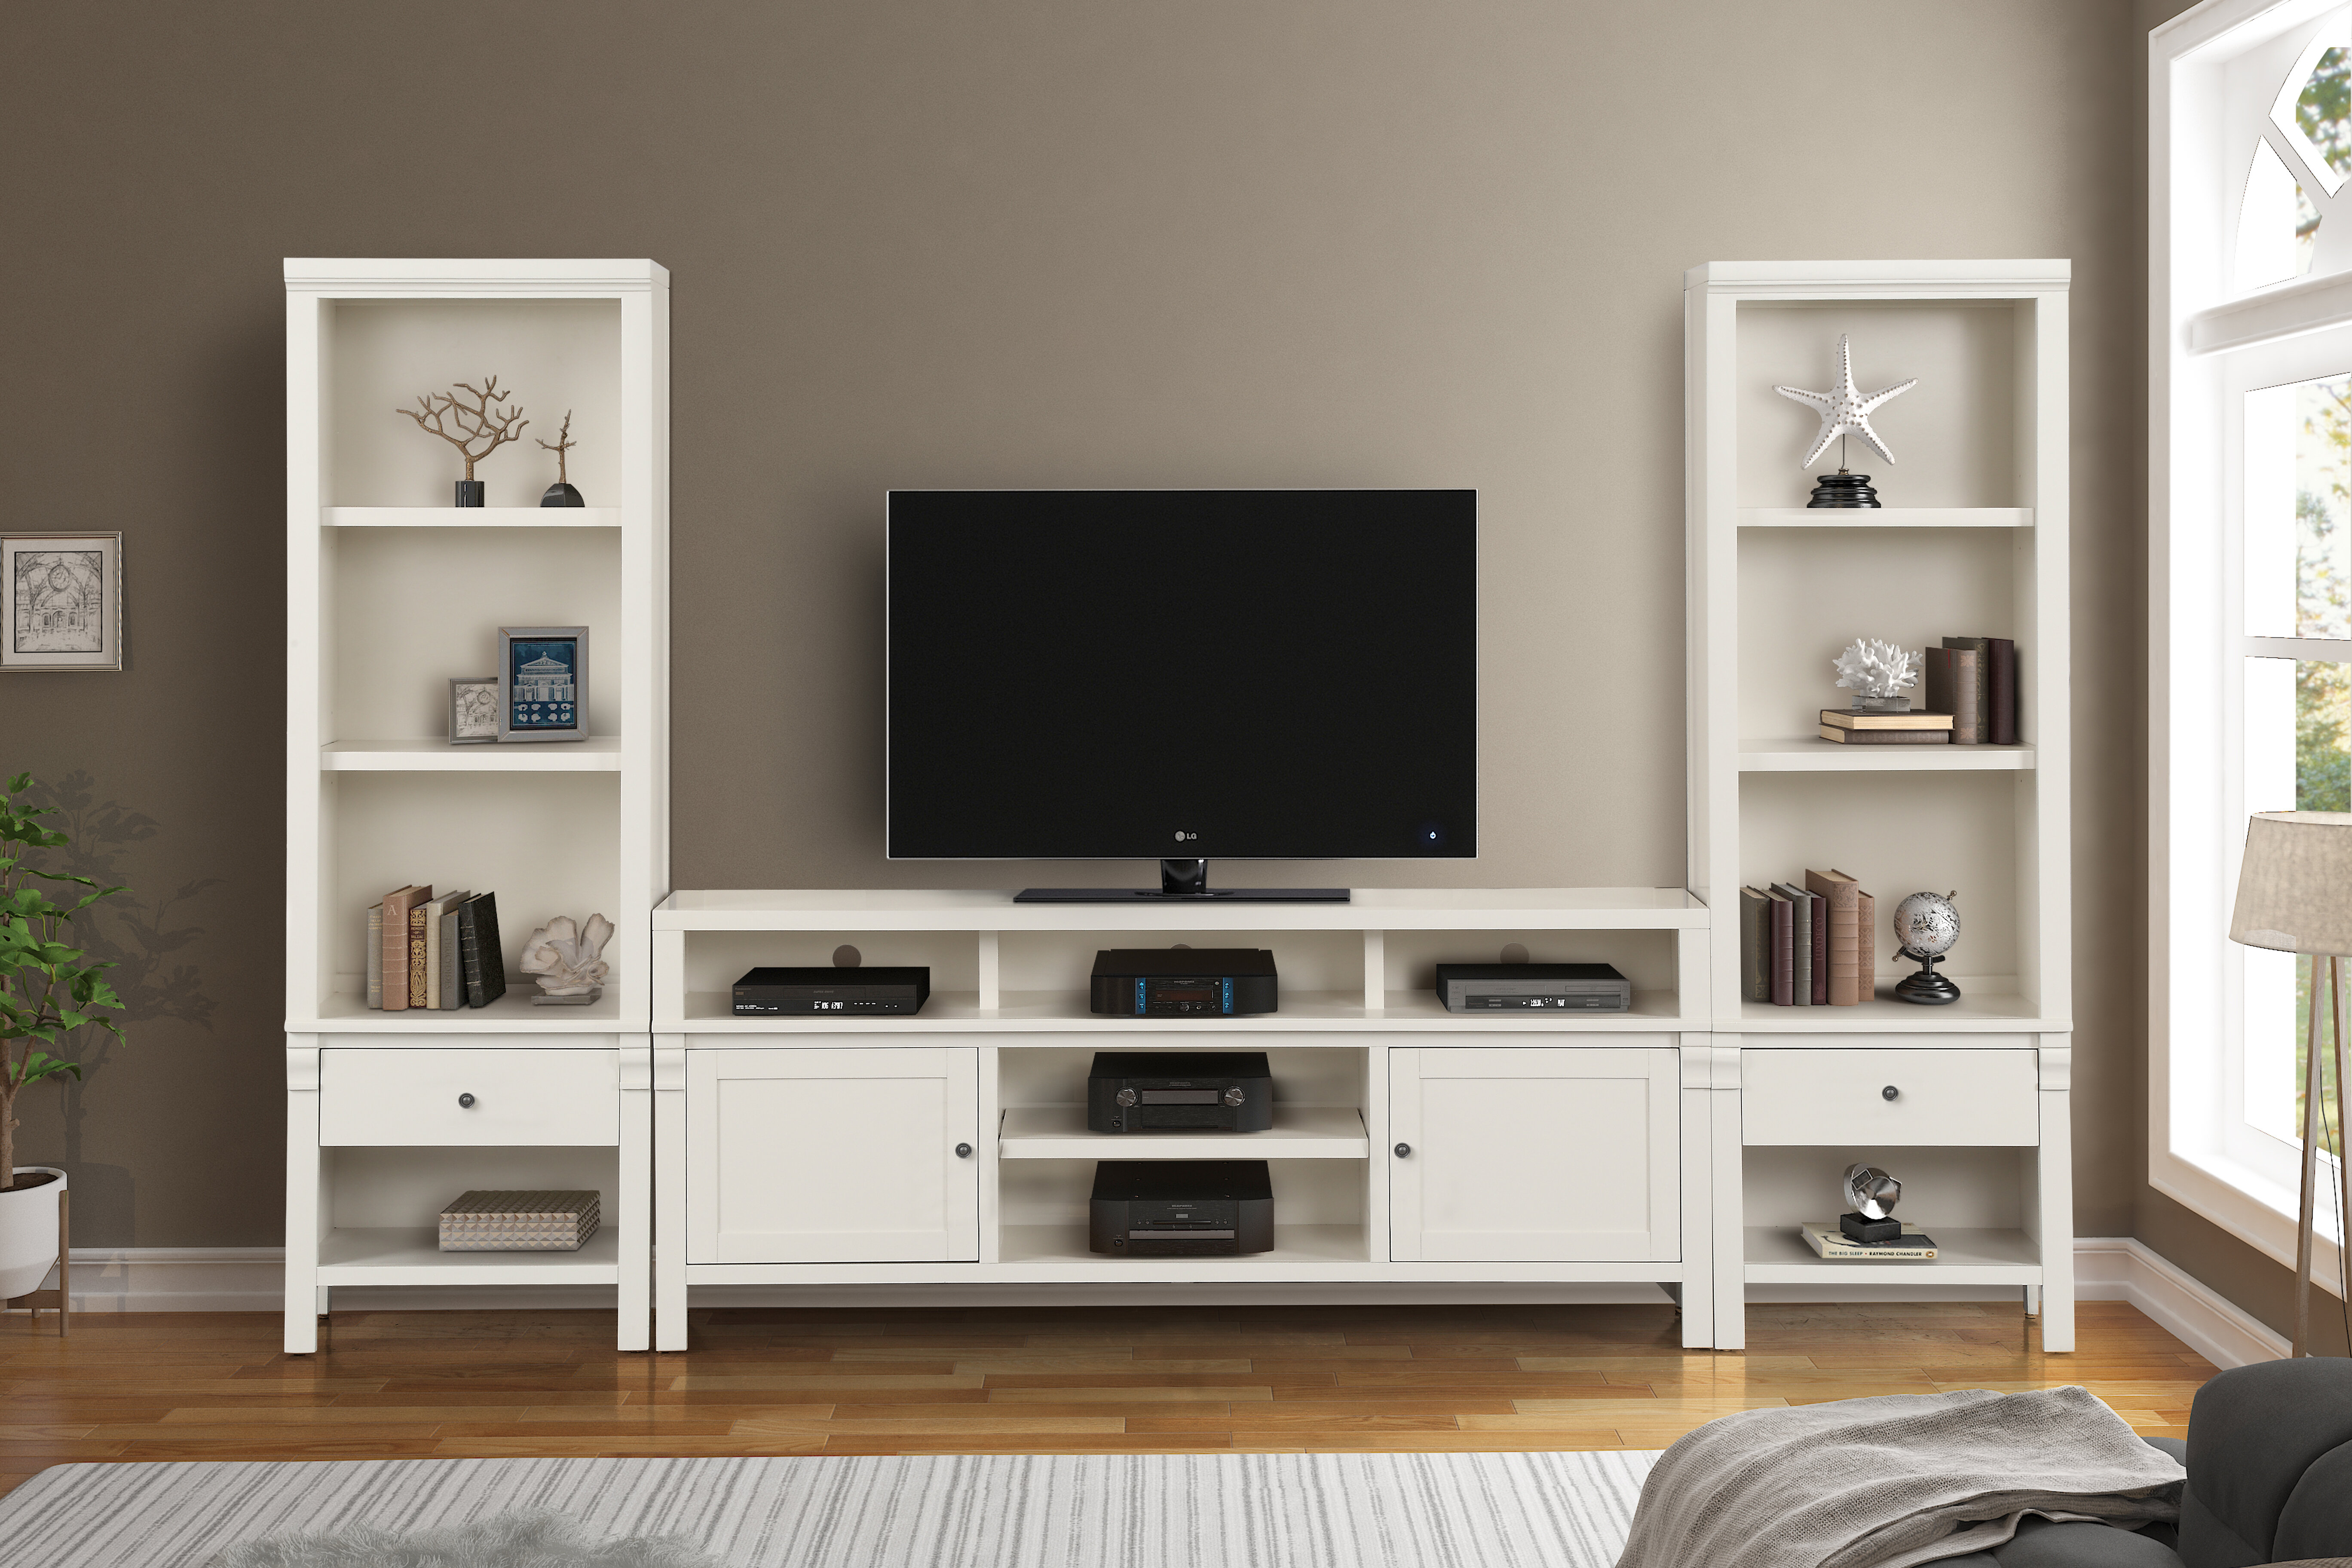 Canora Grey Leota Solid Wood Entertainment Center For Tvs Up To 75